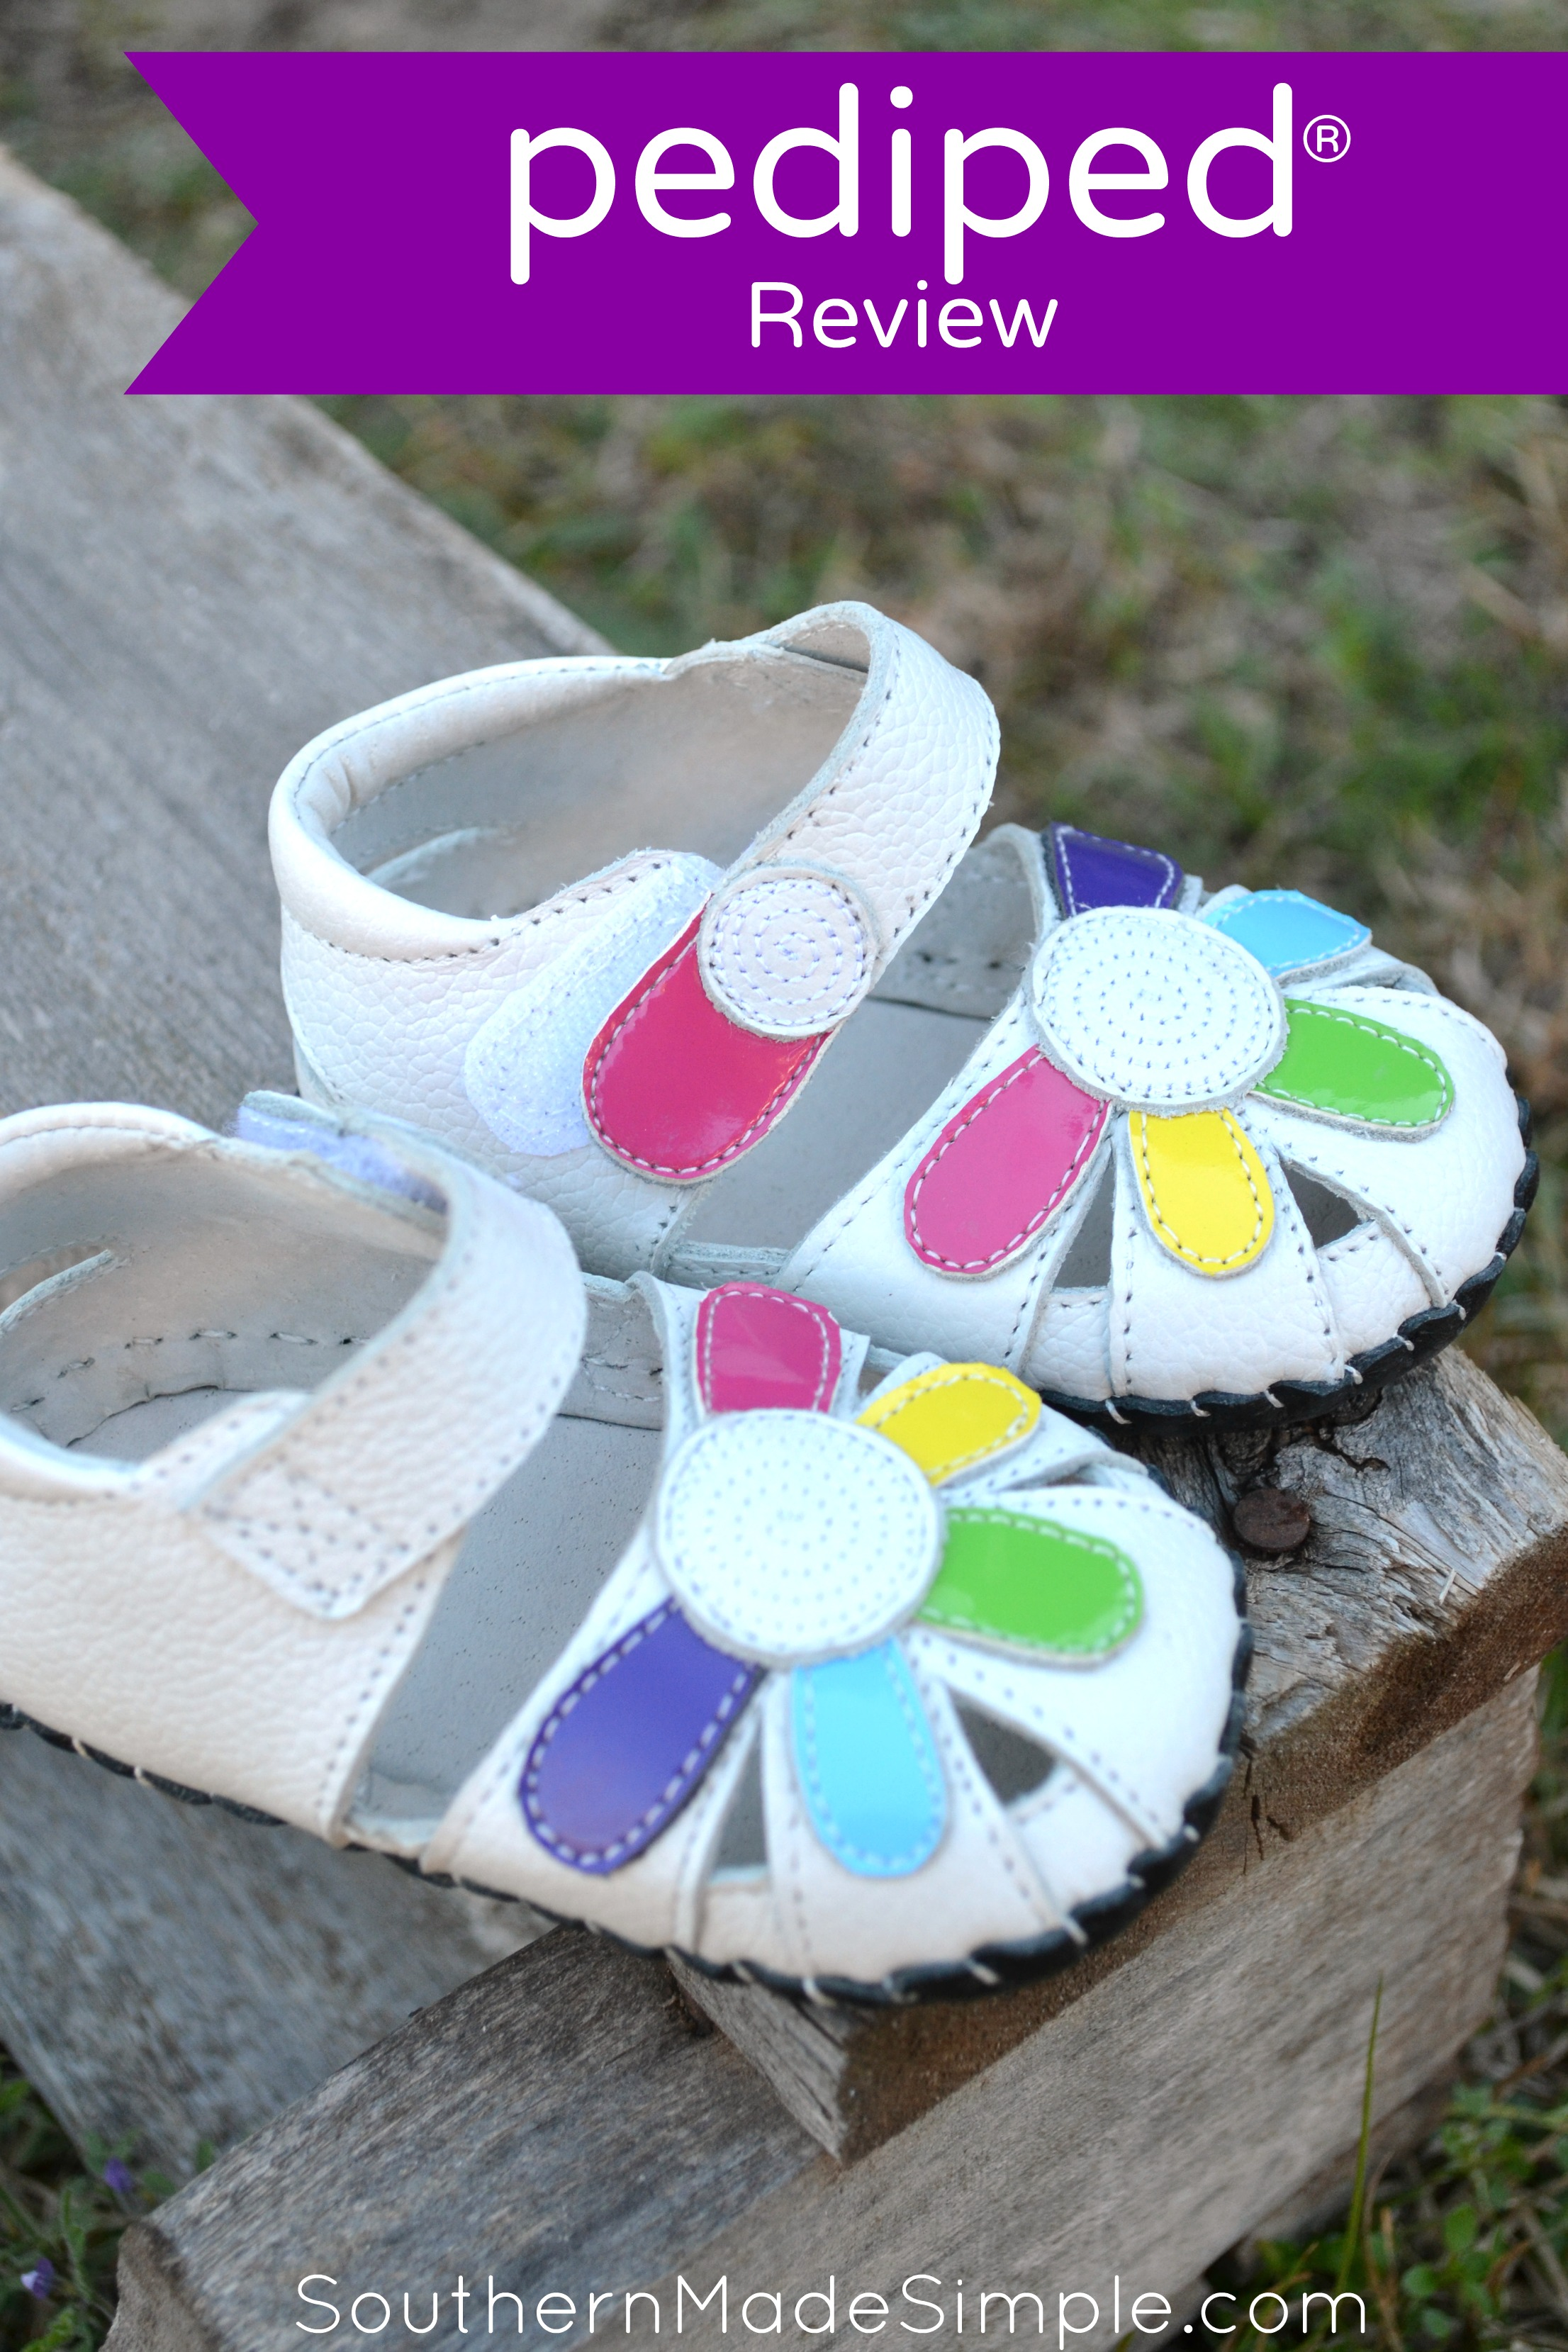 Pediped Shoes Review - 2016 Spring/Summer Collection